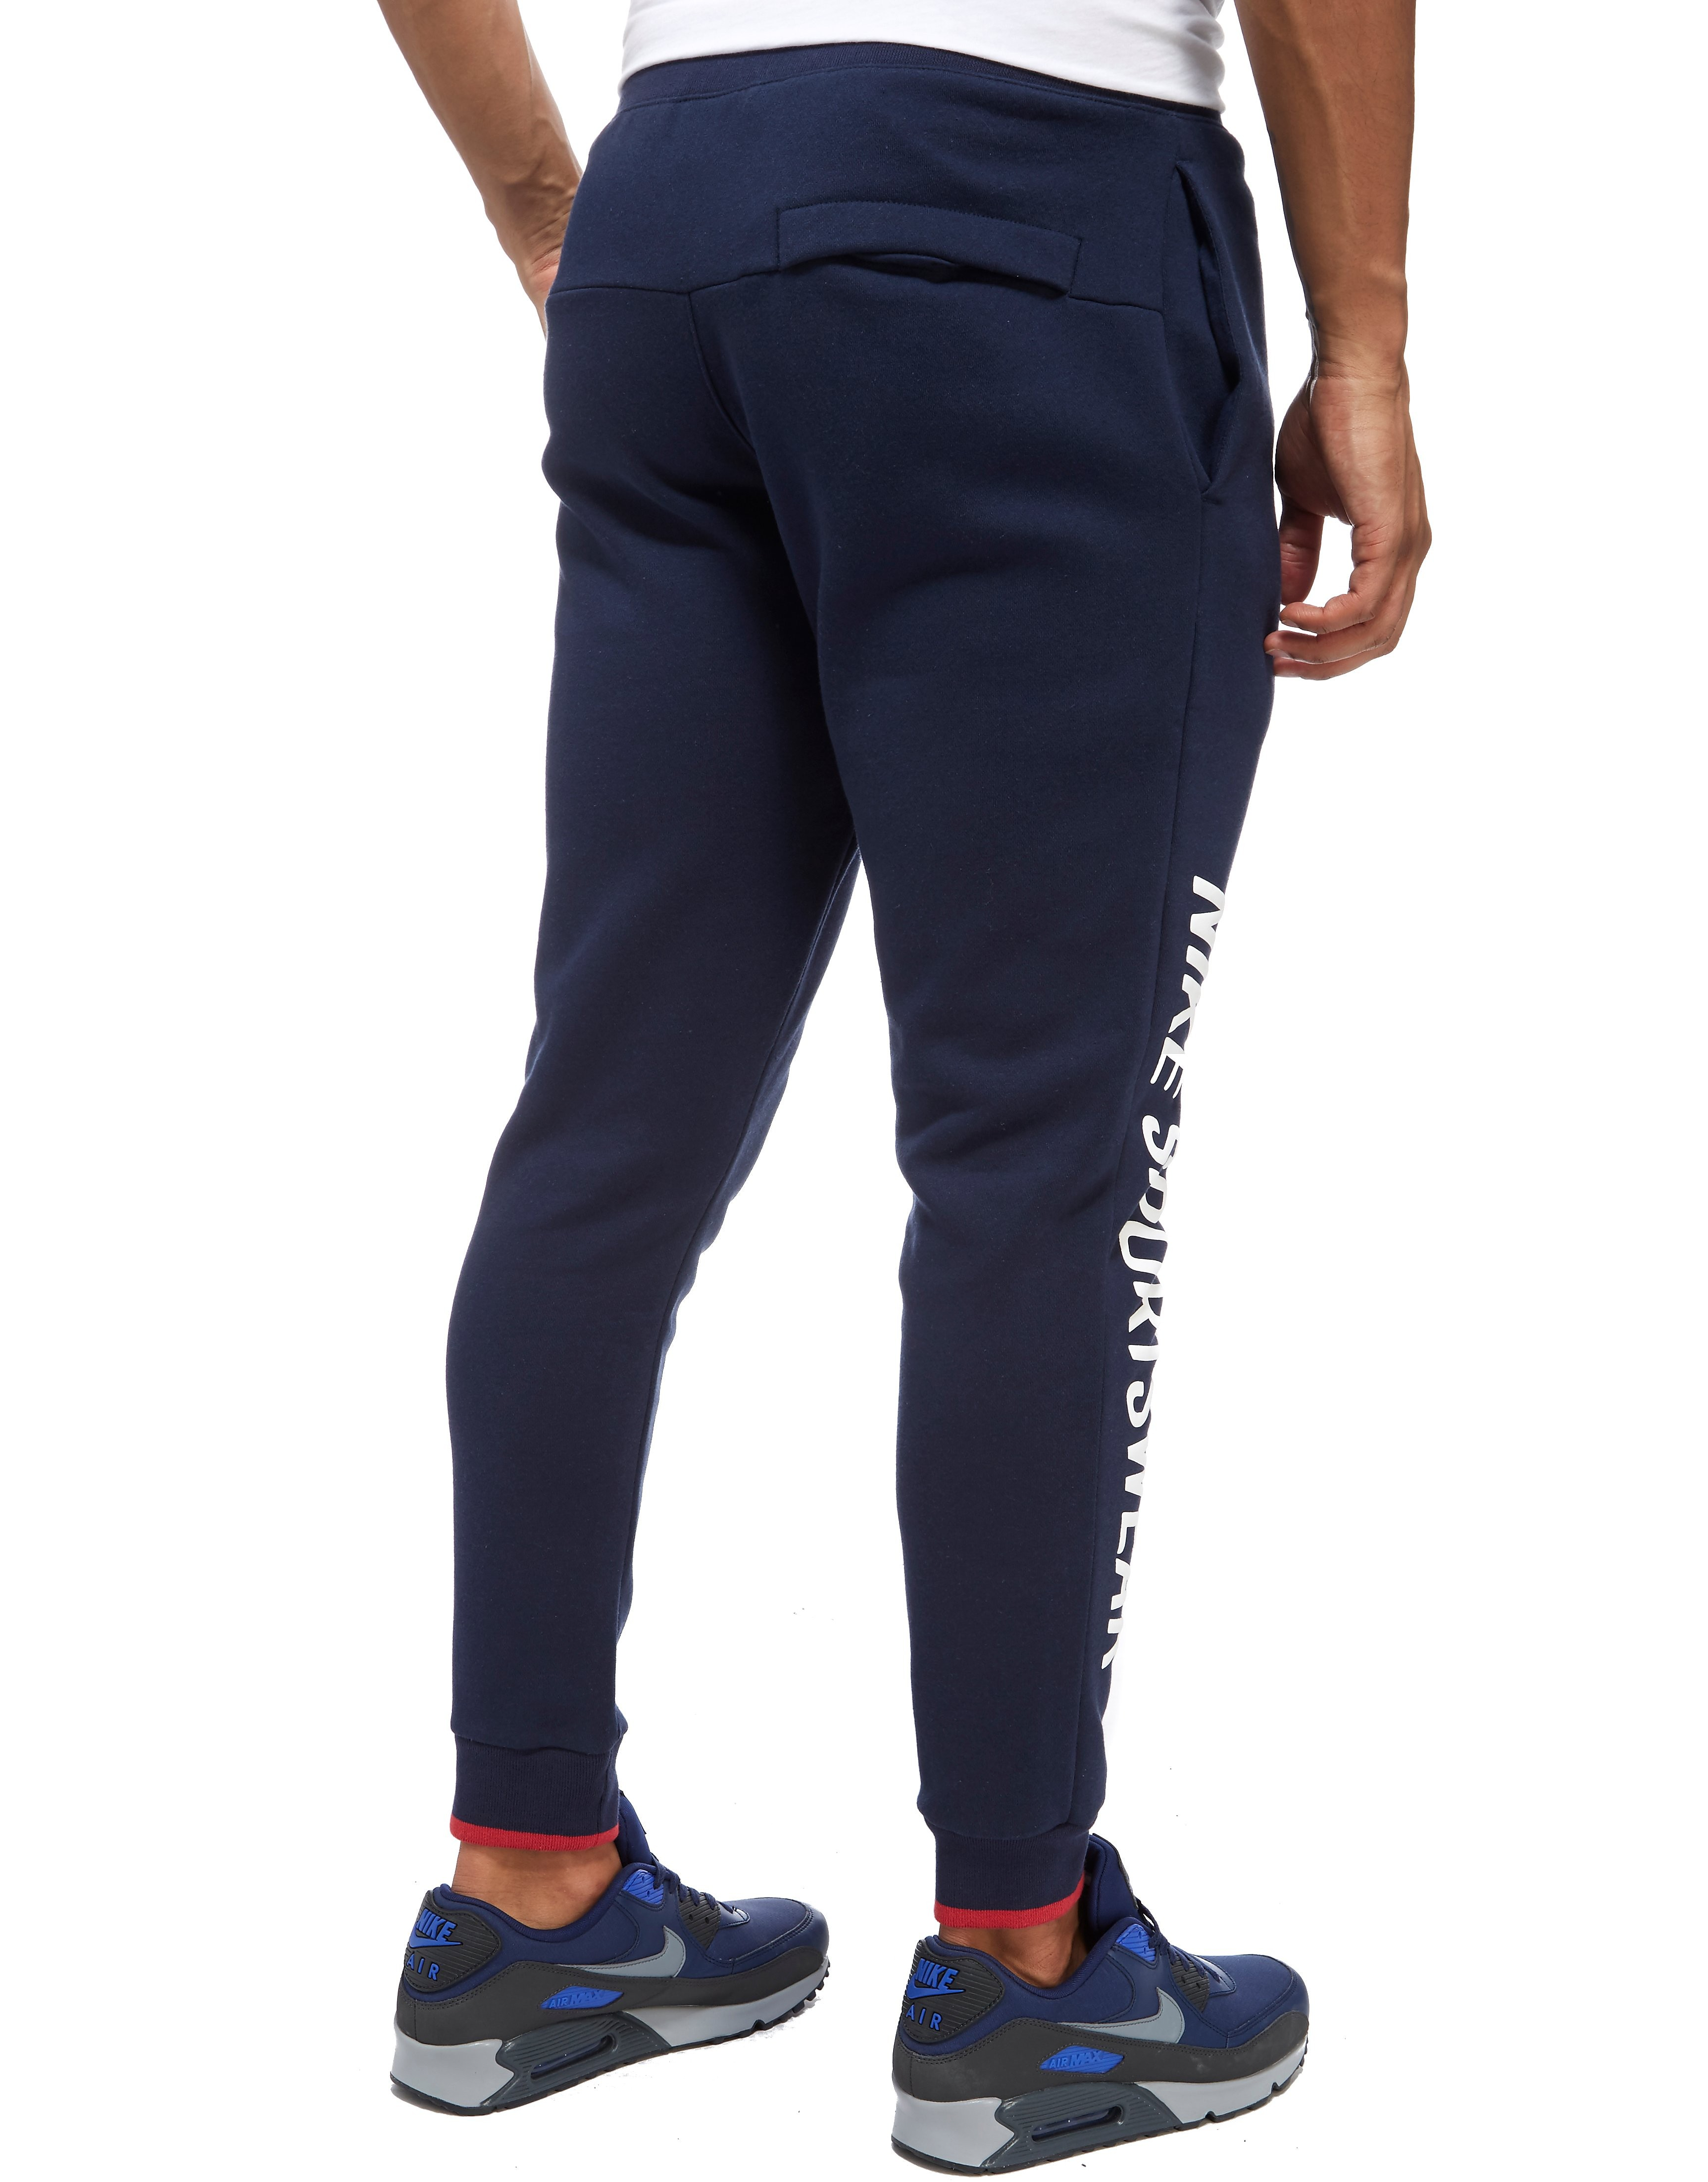 Nike Archive Pants